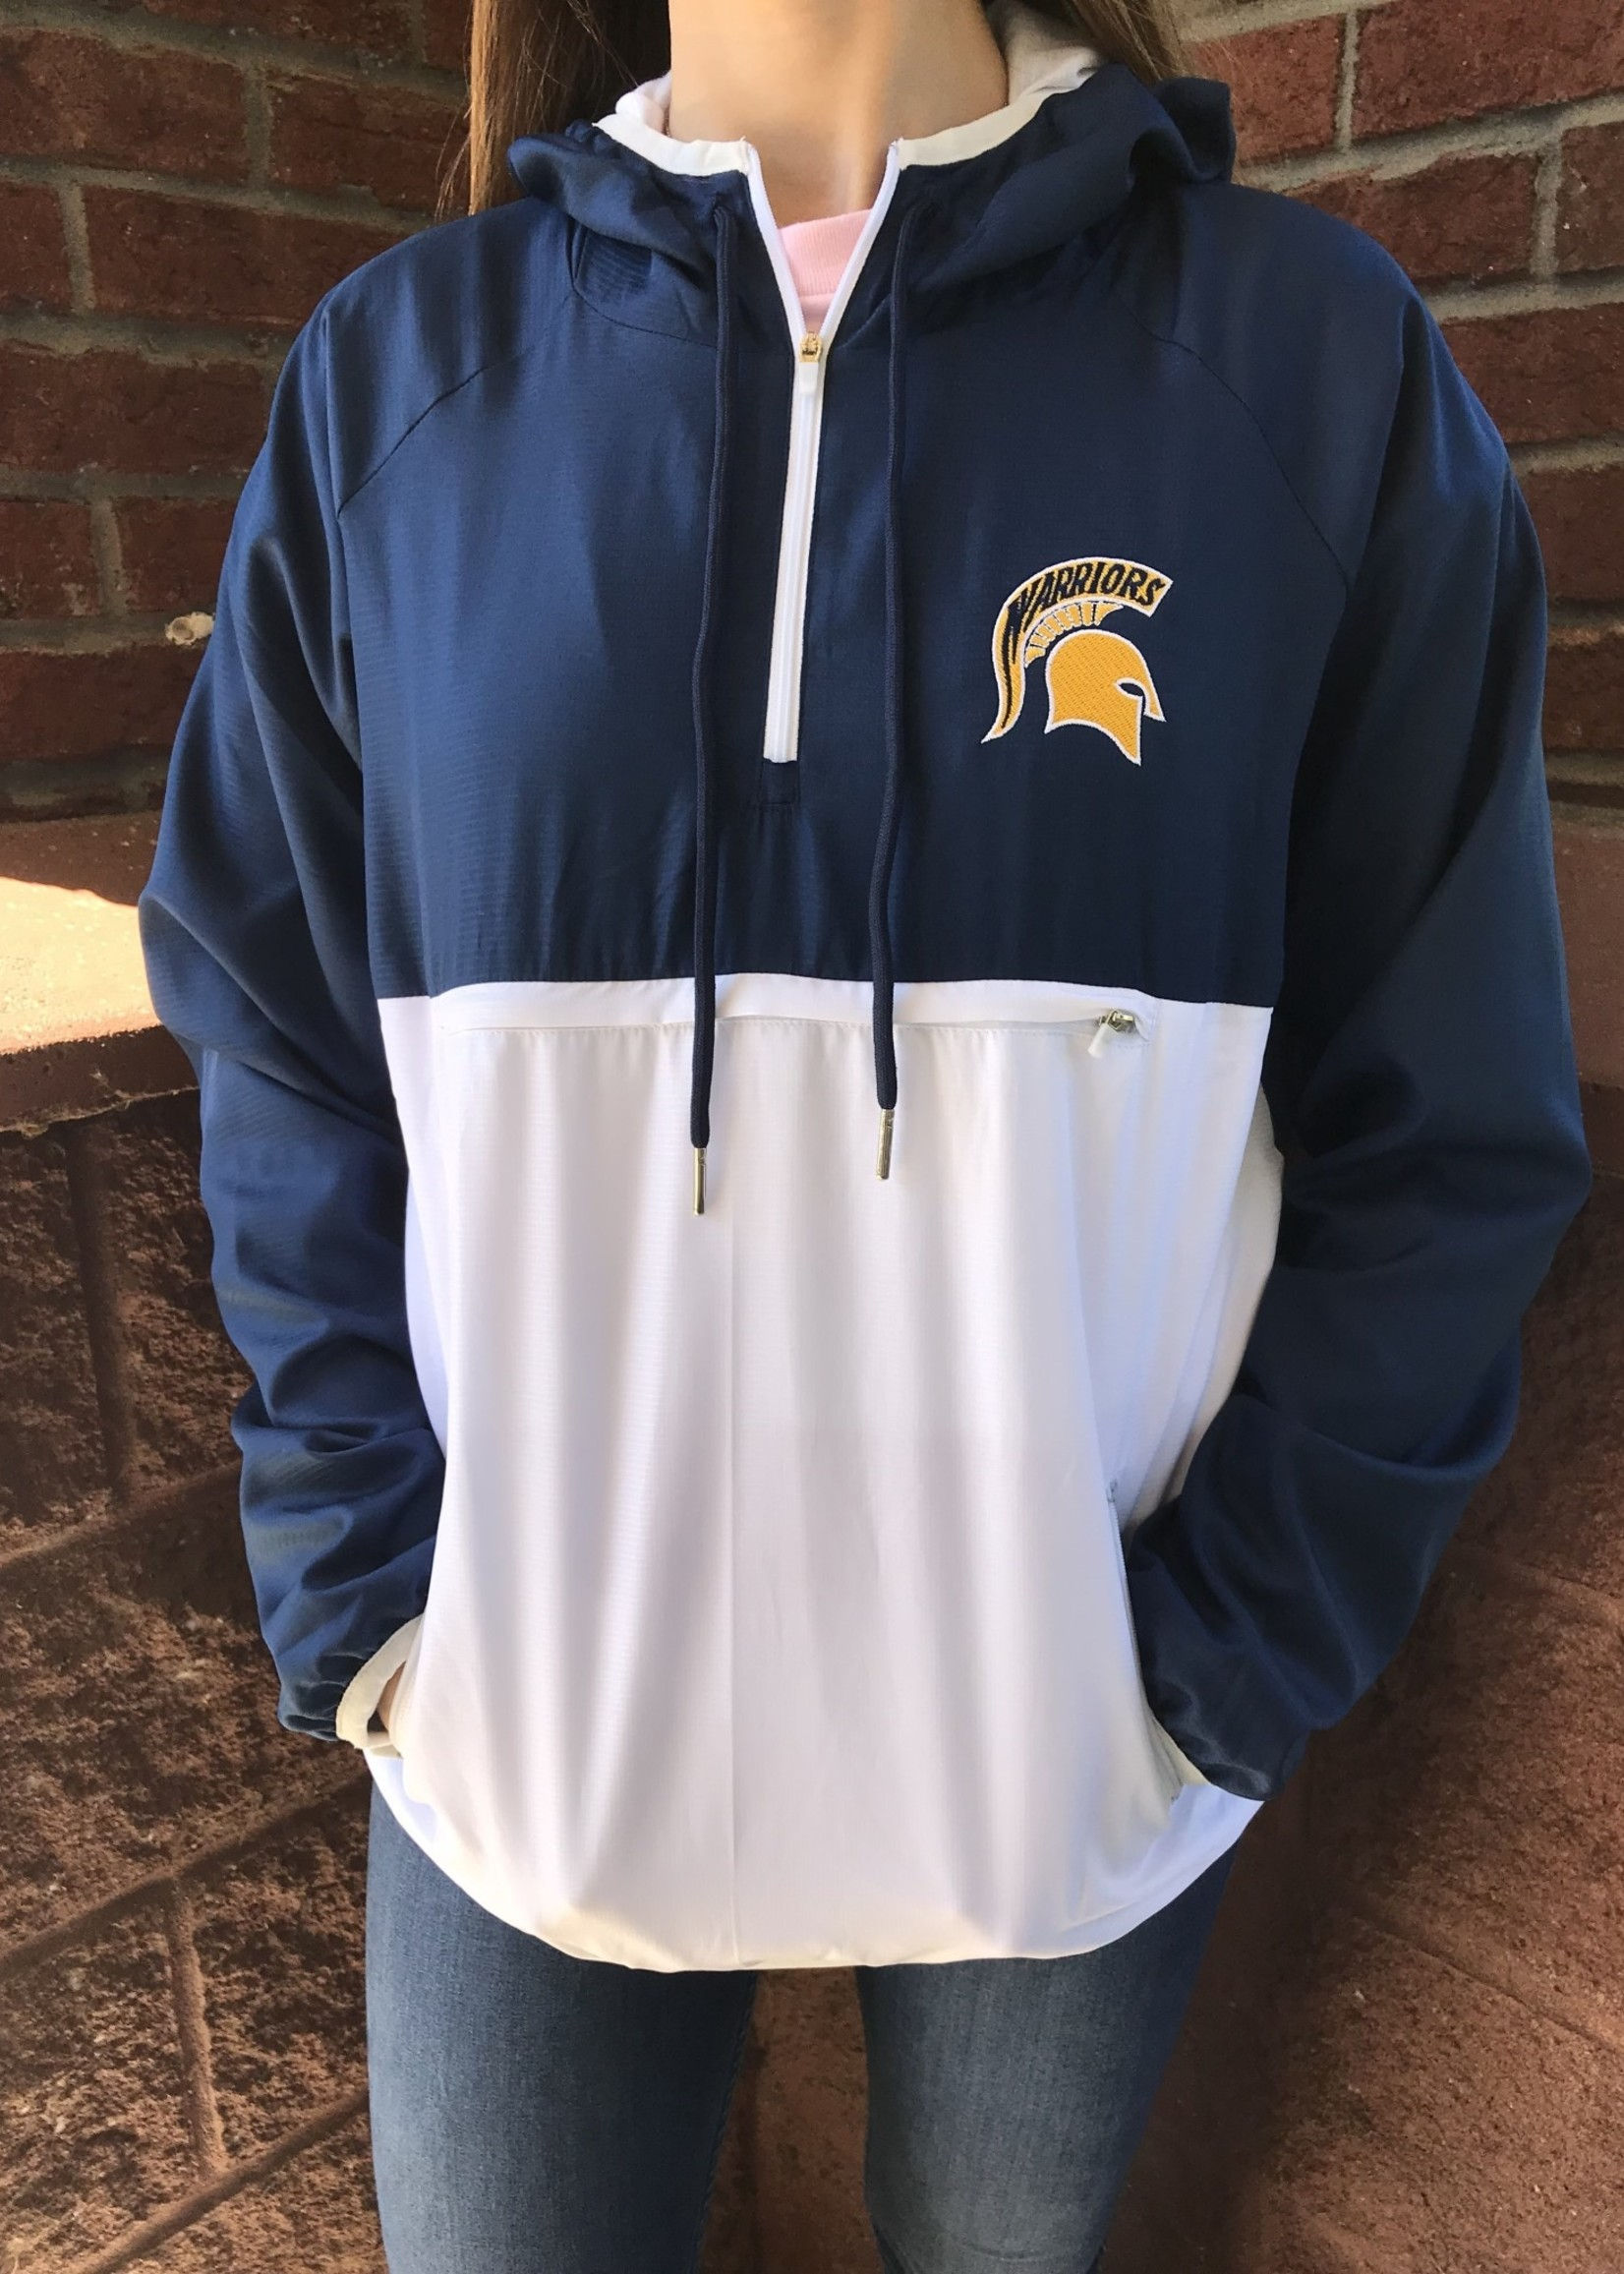 GSHS Ladies Pennant Pullover Jackets